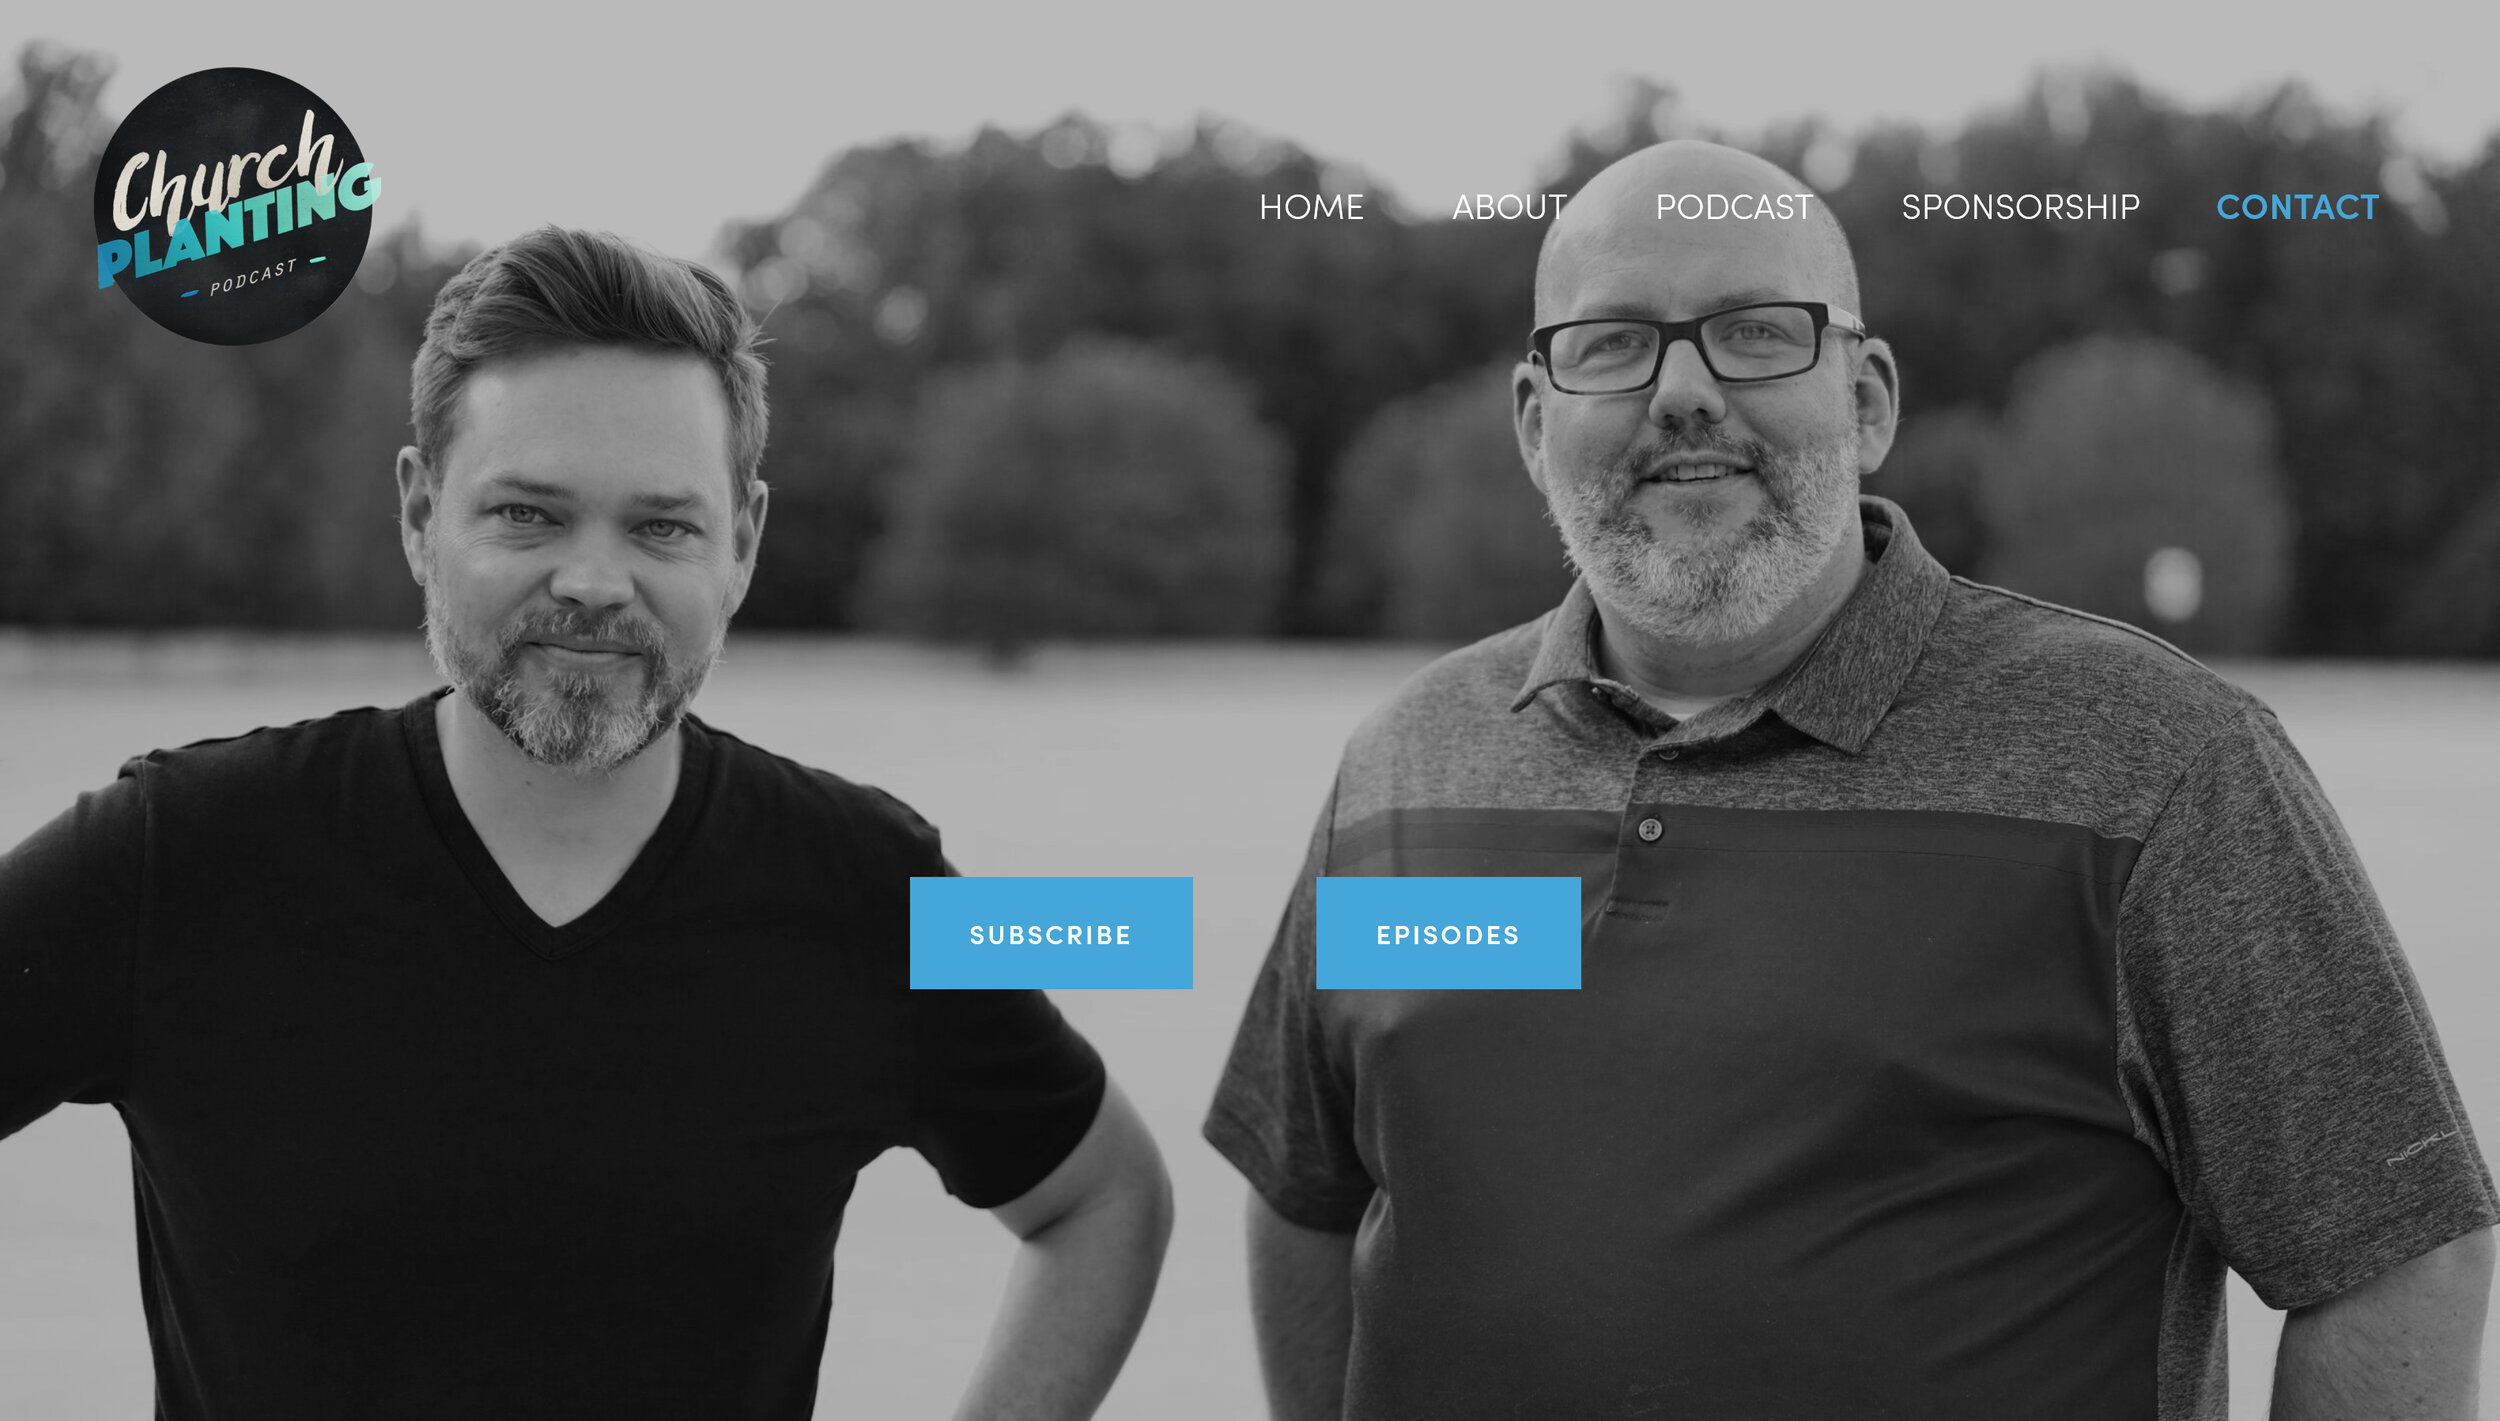 Church Planting Podcast - The Church Planting Podcast is a weekly, interview podcast intended to help church planters and sending churches aspiring to make more disciples through church…